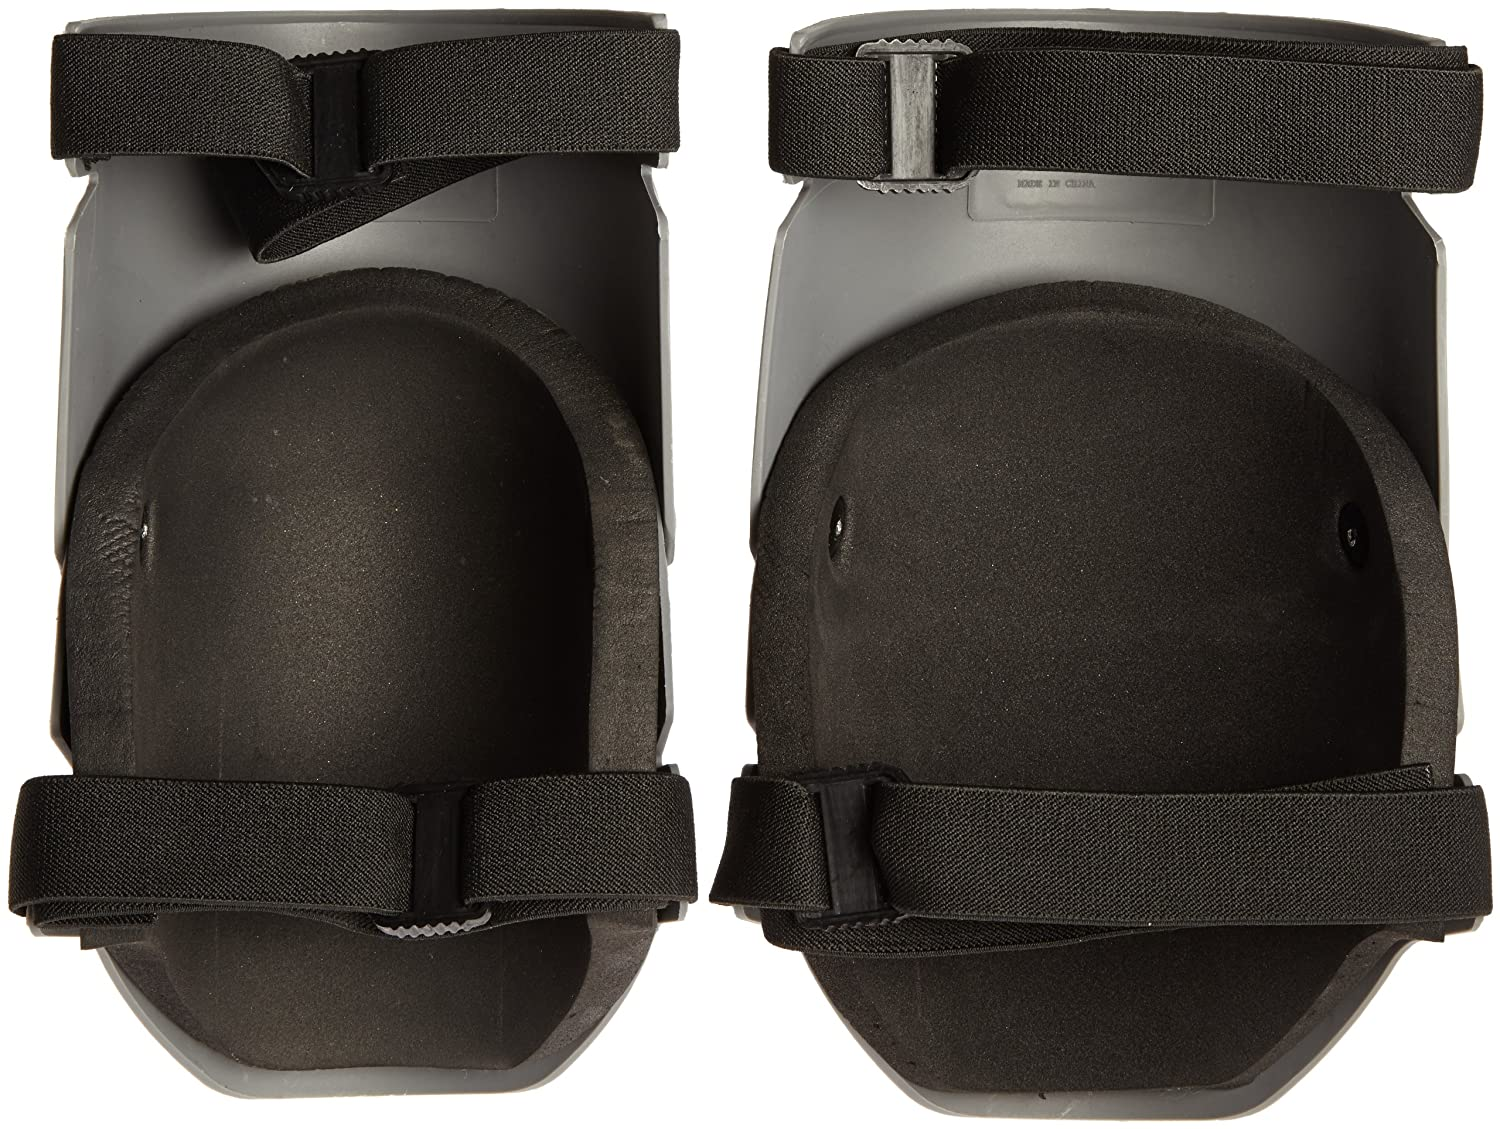 Sellstrom S96110-6 Knee-Pro Ultra Flex III Series Replacement Strap and Clips Sellstrom Manufacturing Company Pack of 4